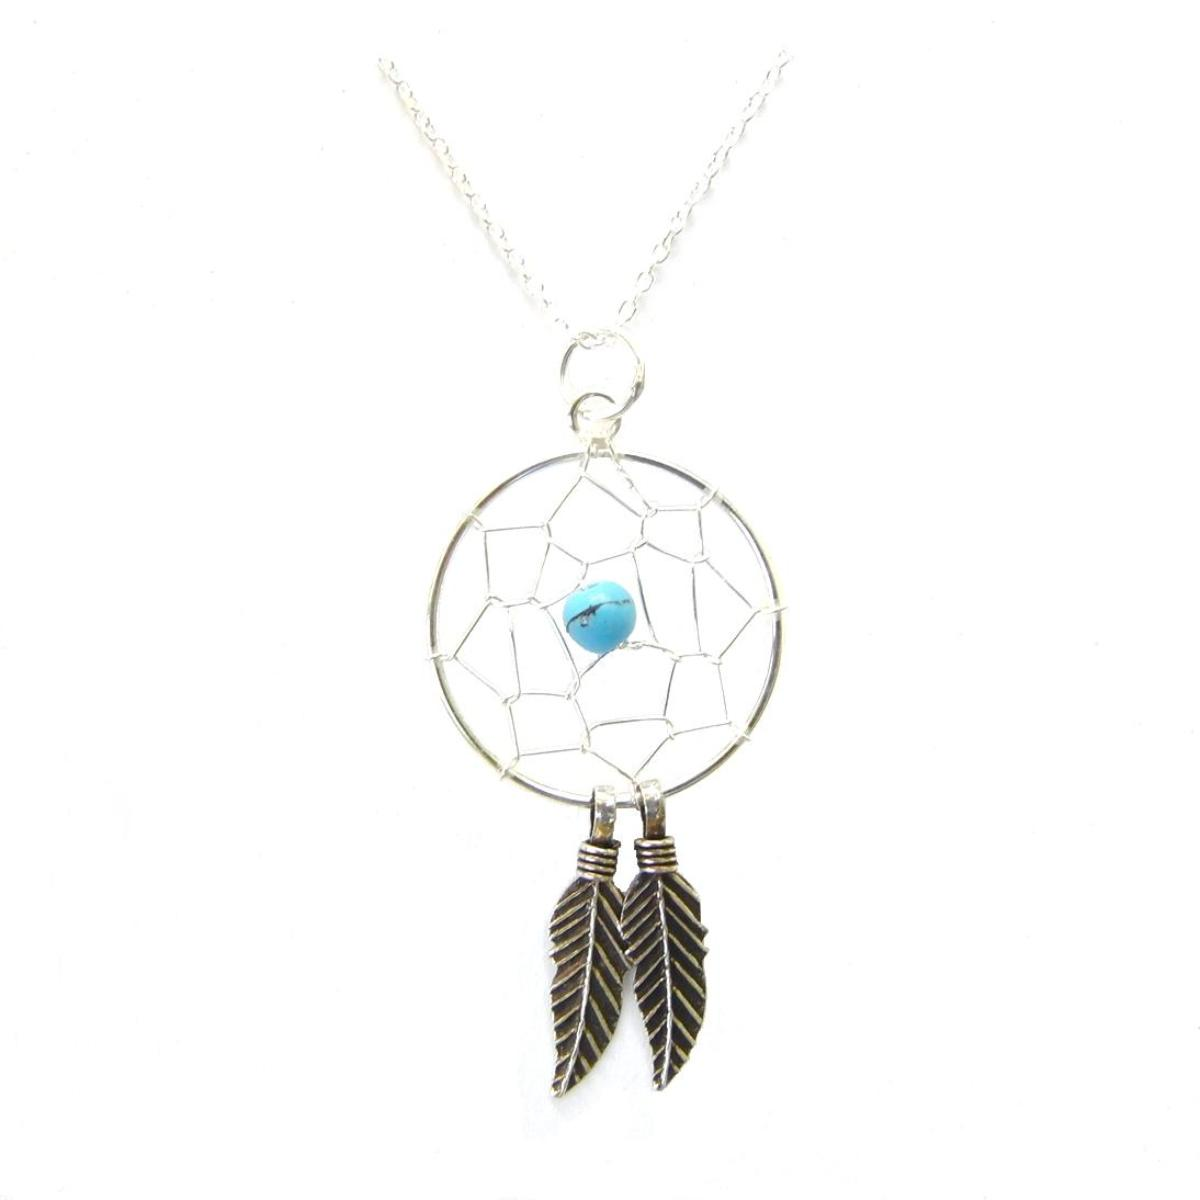 Medium Dreamcatcher Necklace